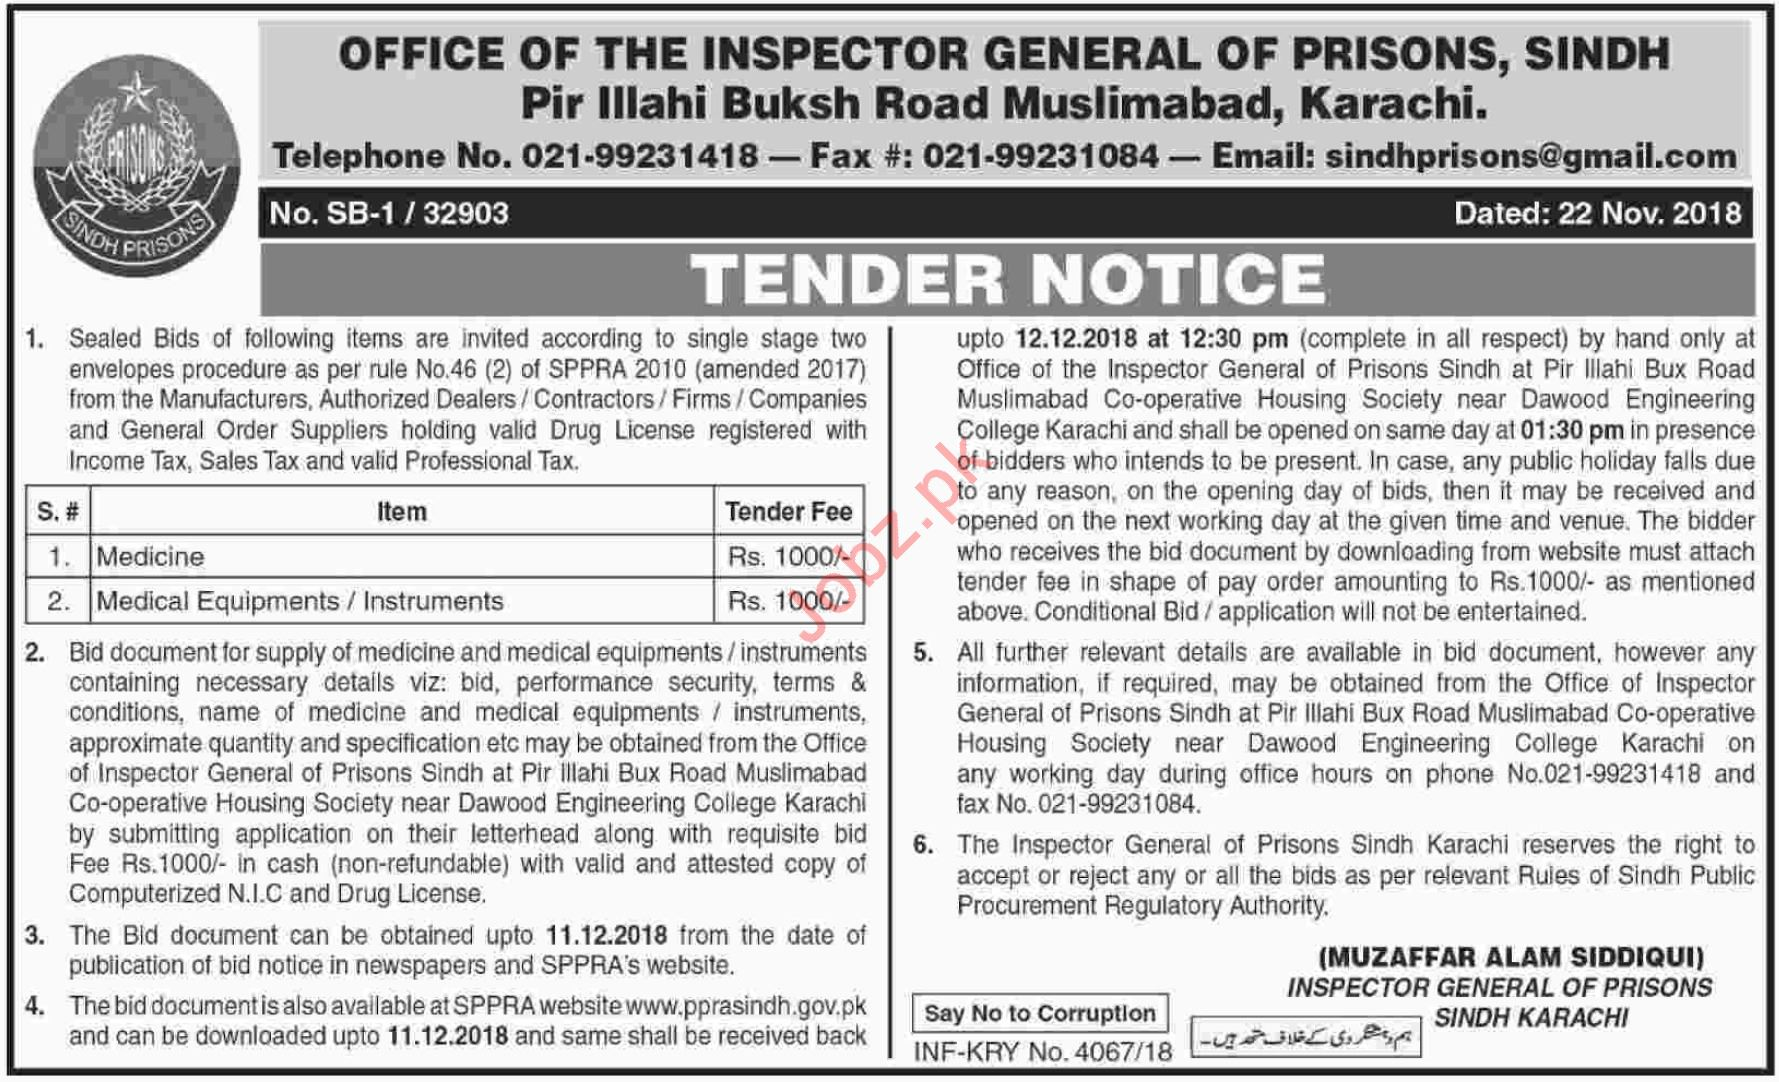 Sindh Prisons Tender Notice 2019 Government tenders None